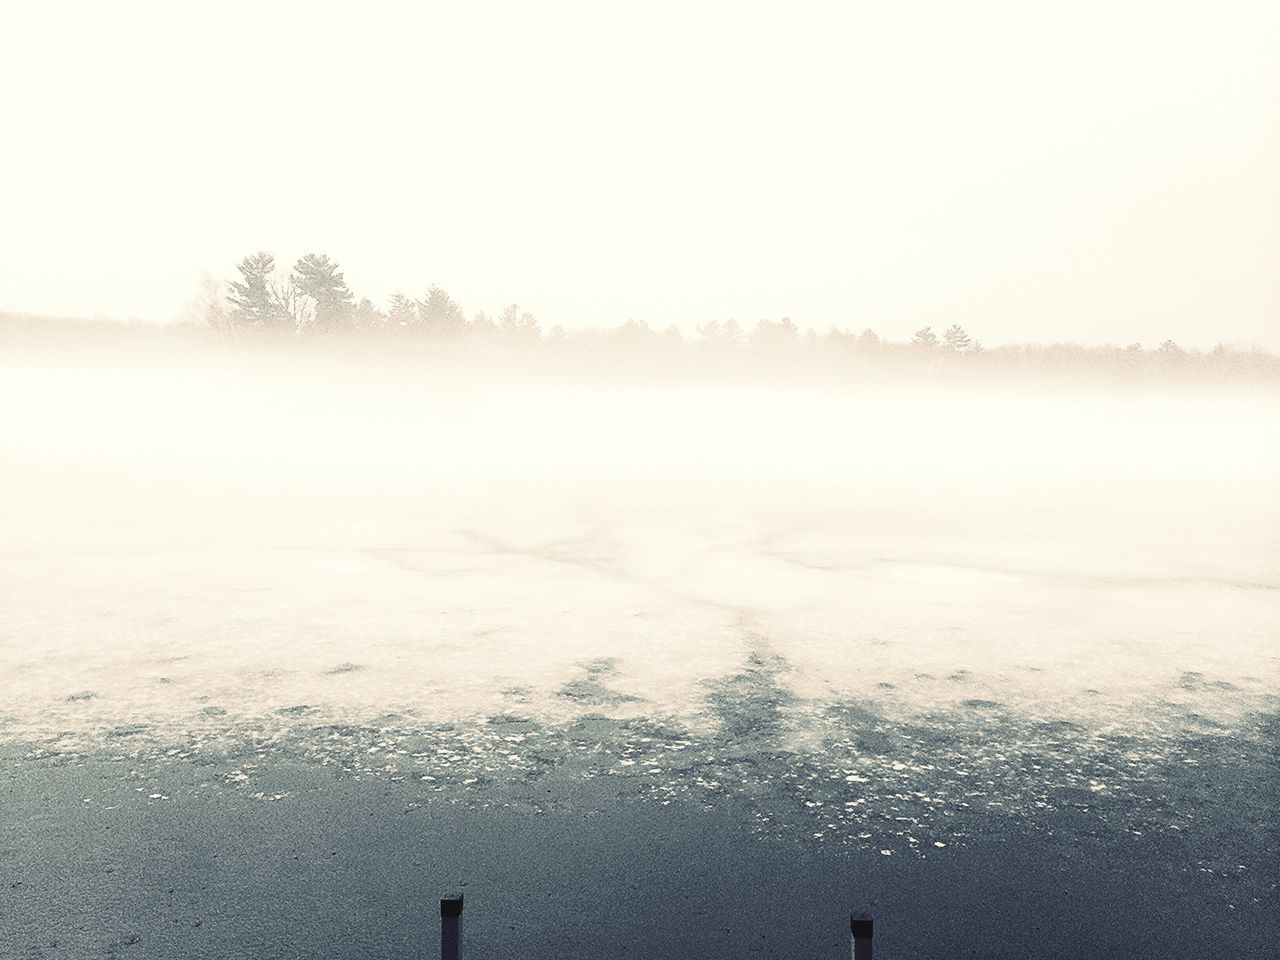 winter, cold temperature, nature, tranquility, beauty in nature, snow, weather, tranquil scene, no people, mist, scenics, idyllic, outdoors, frozen, flat, fog, landscape, hazy, day, water, tree, sky